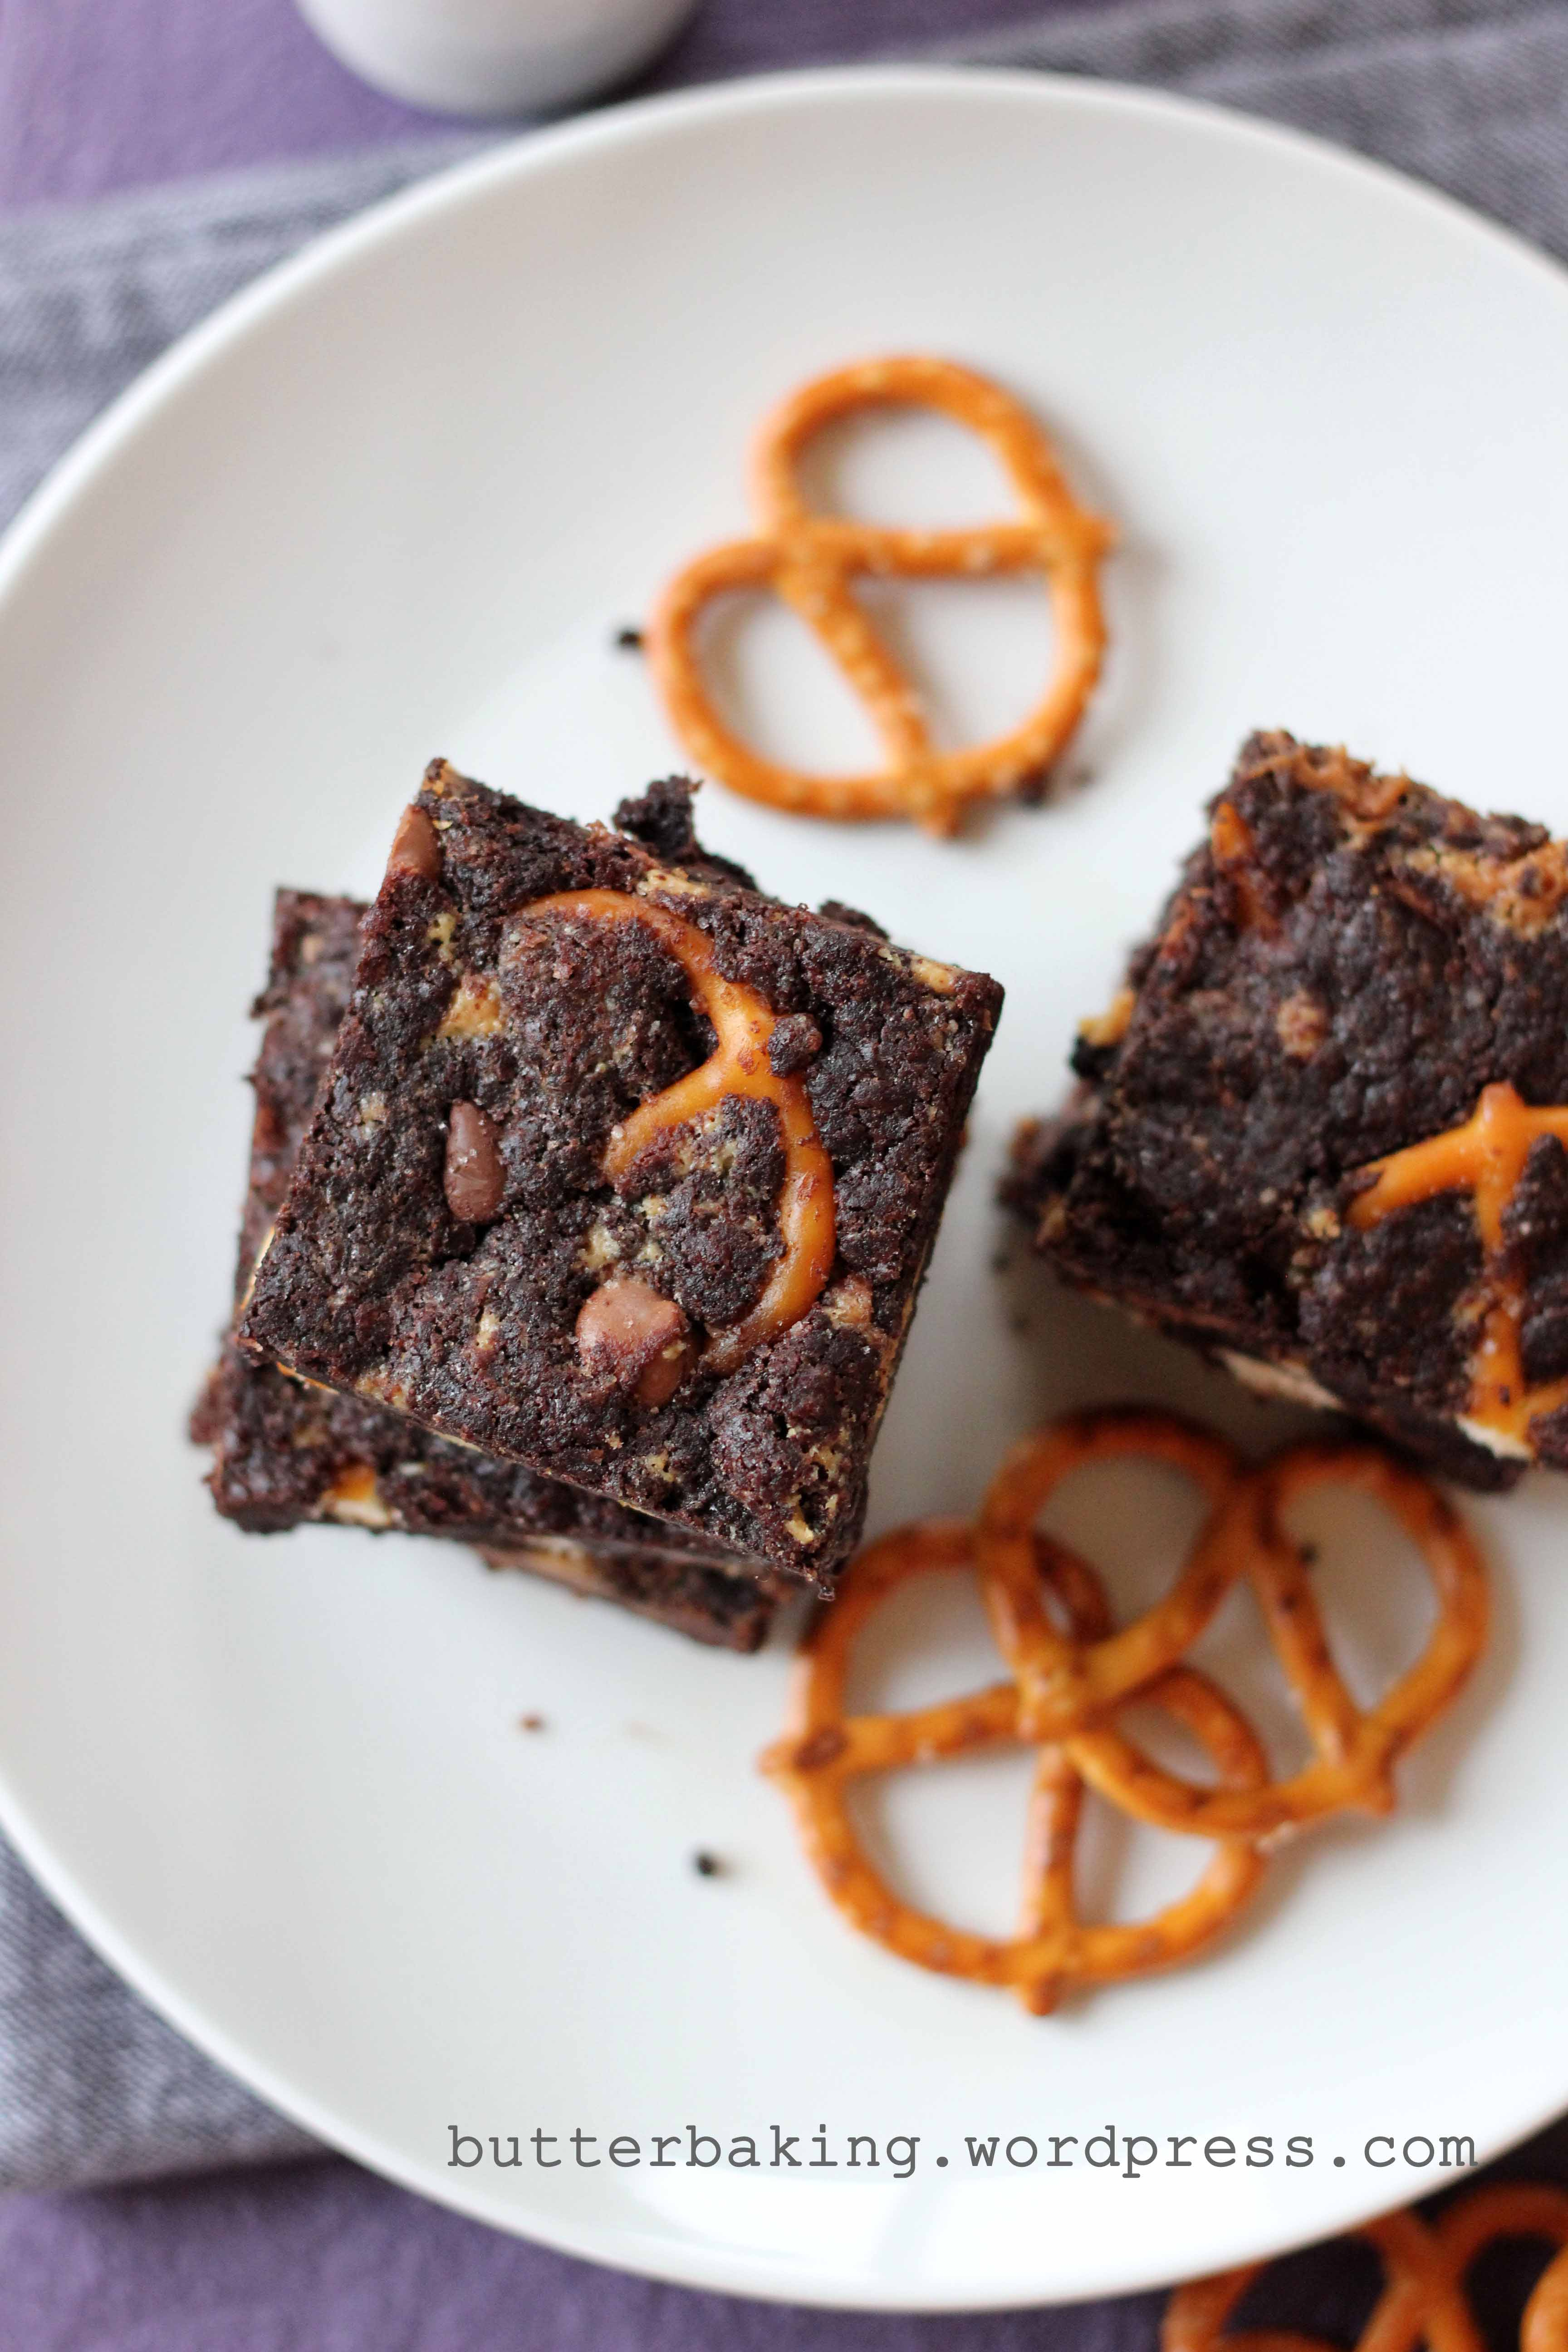 Pretzel, Chocolate Chip and Peanut Butter Truffle Brownies | Butter Baking